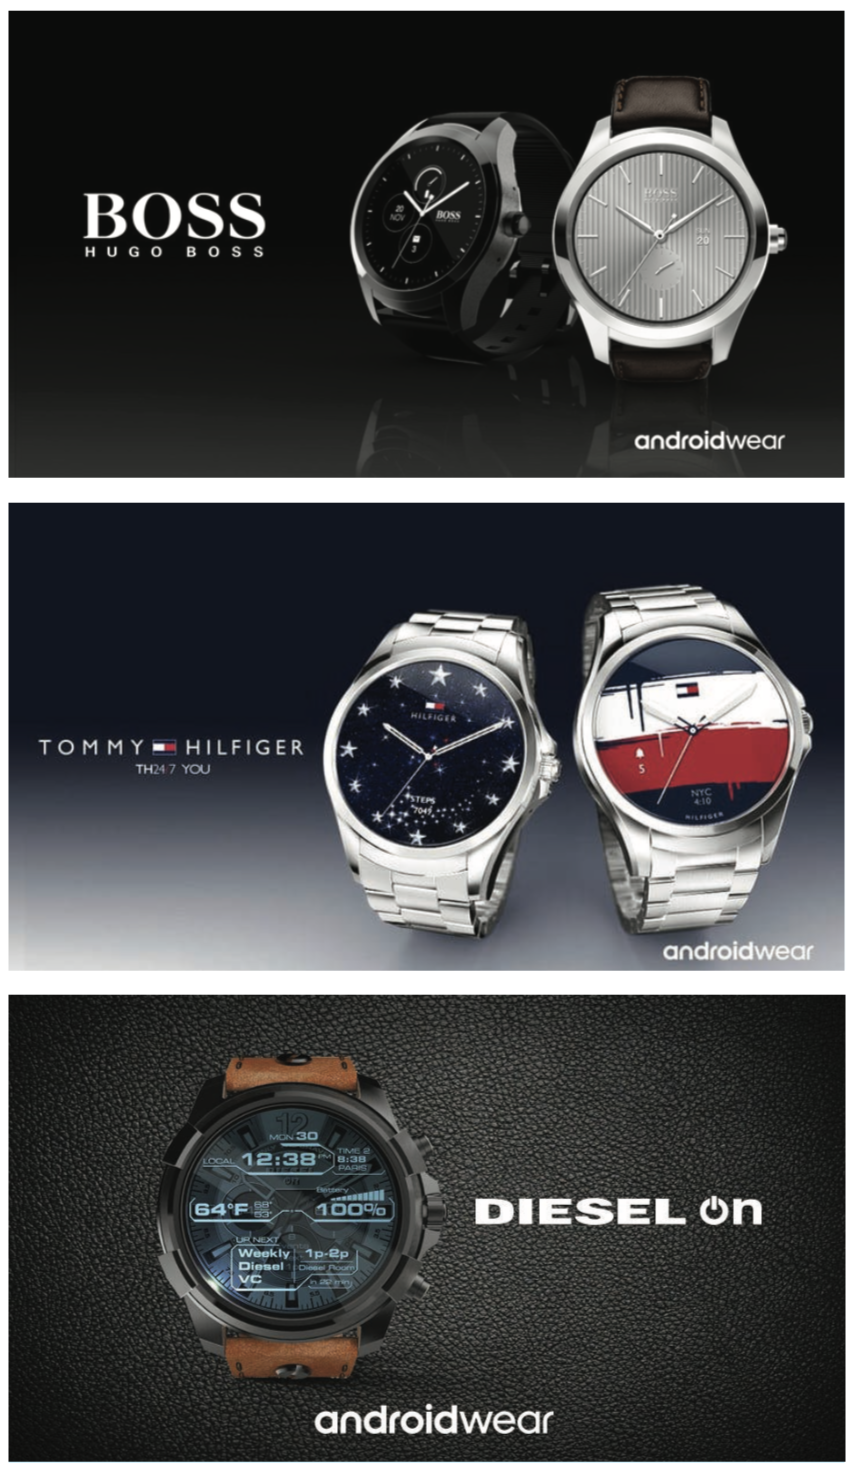 Launched more than 20 watches with over 14 partner brands - Manage marketing relationships with watch hardware partners, focusing on: product launches, integrated marketing, strategic co-branding initiatives and content development.Including content development for executive speeches, social, announcements and launch campaigns.Creative lead for platform channel marketing activities.